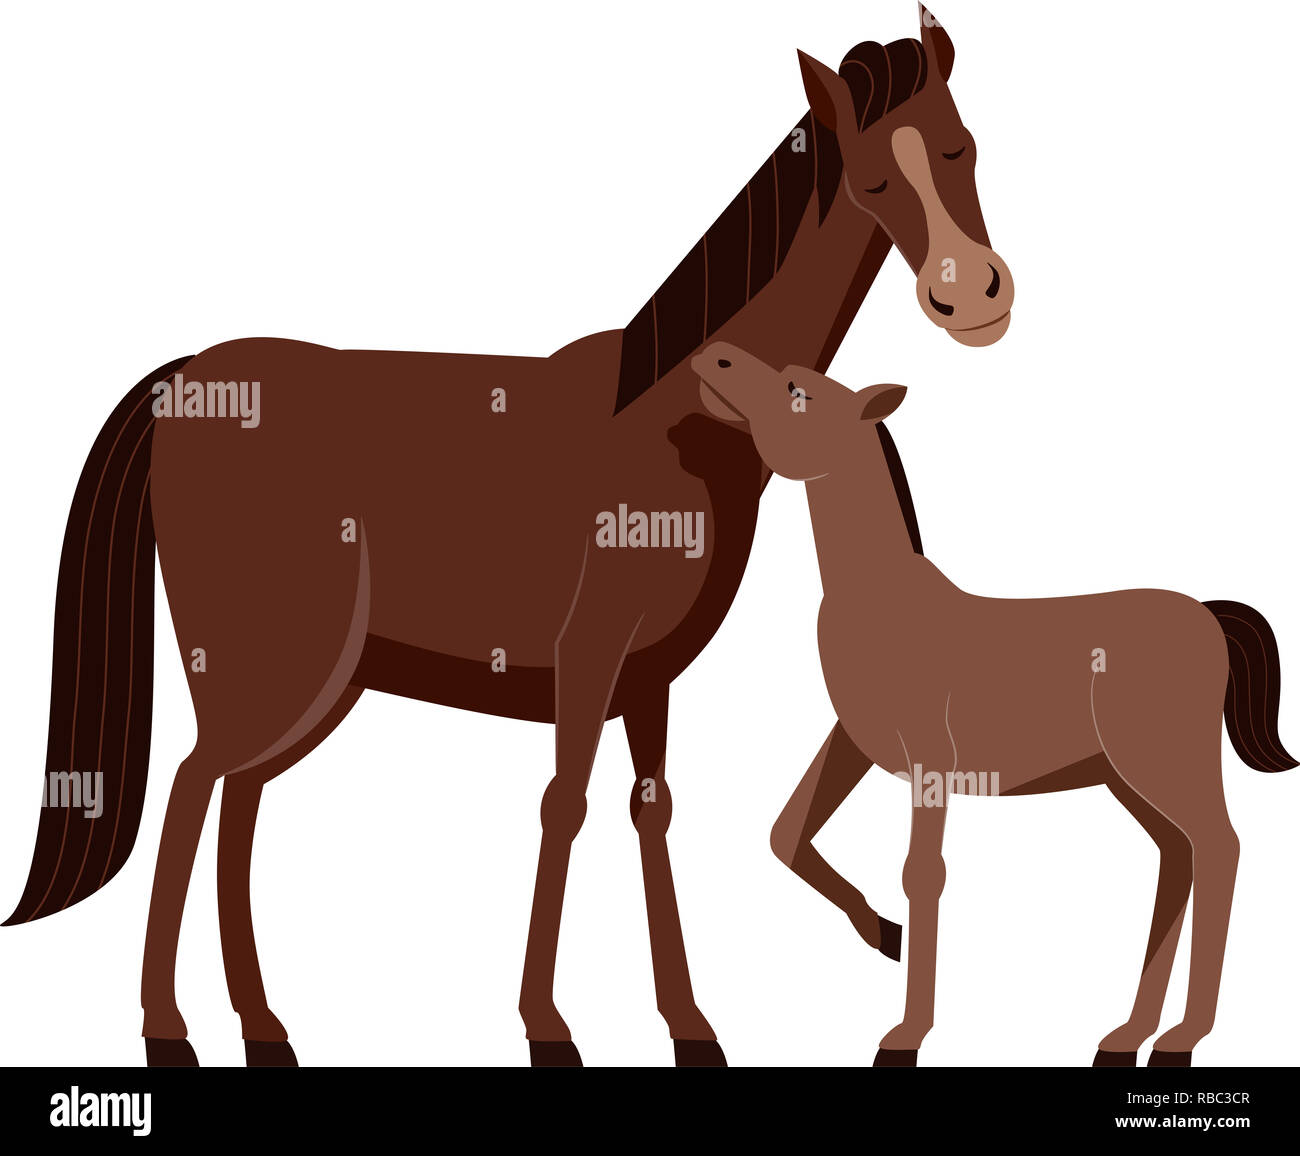 Illustration Of A Mother Horse With Her Young Baby Horse Called Foal Stock Photo Alamy